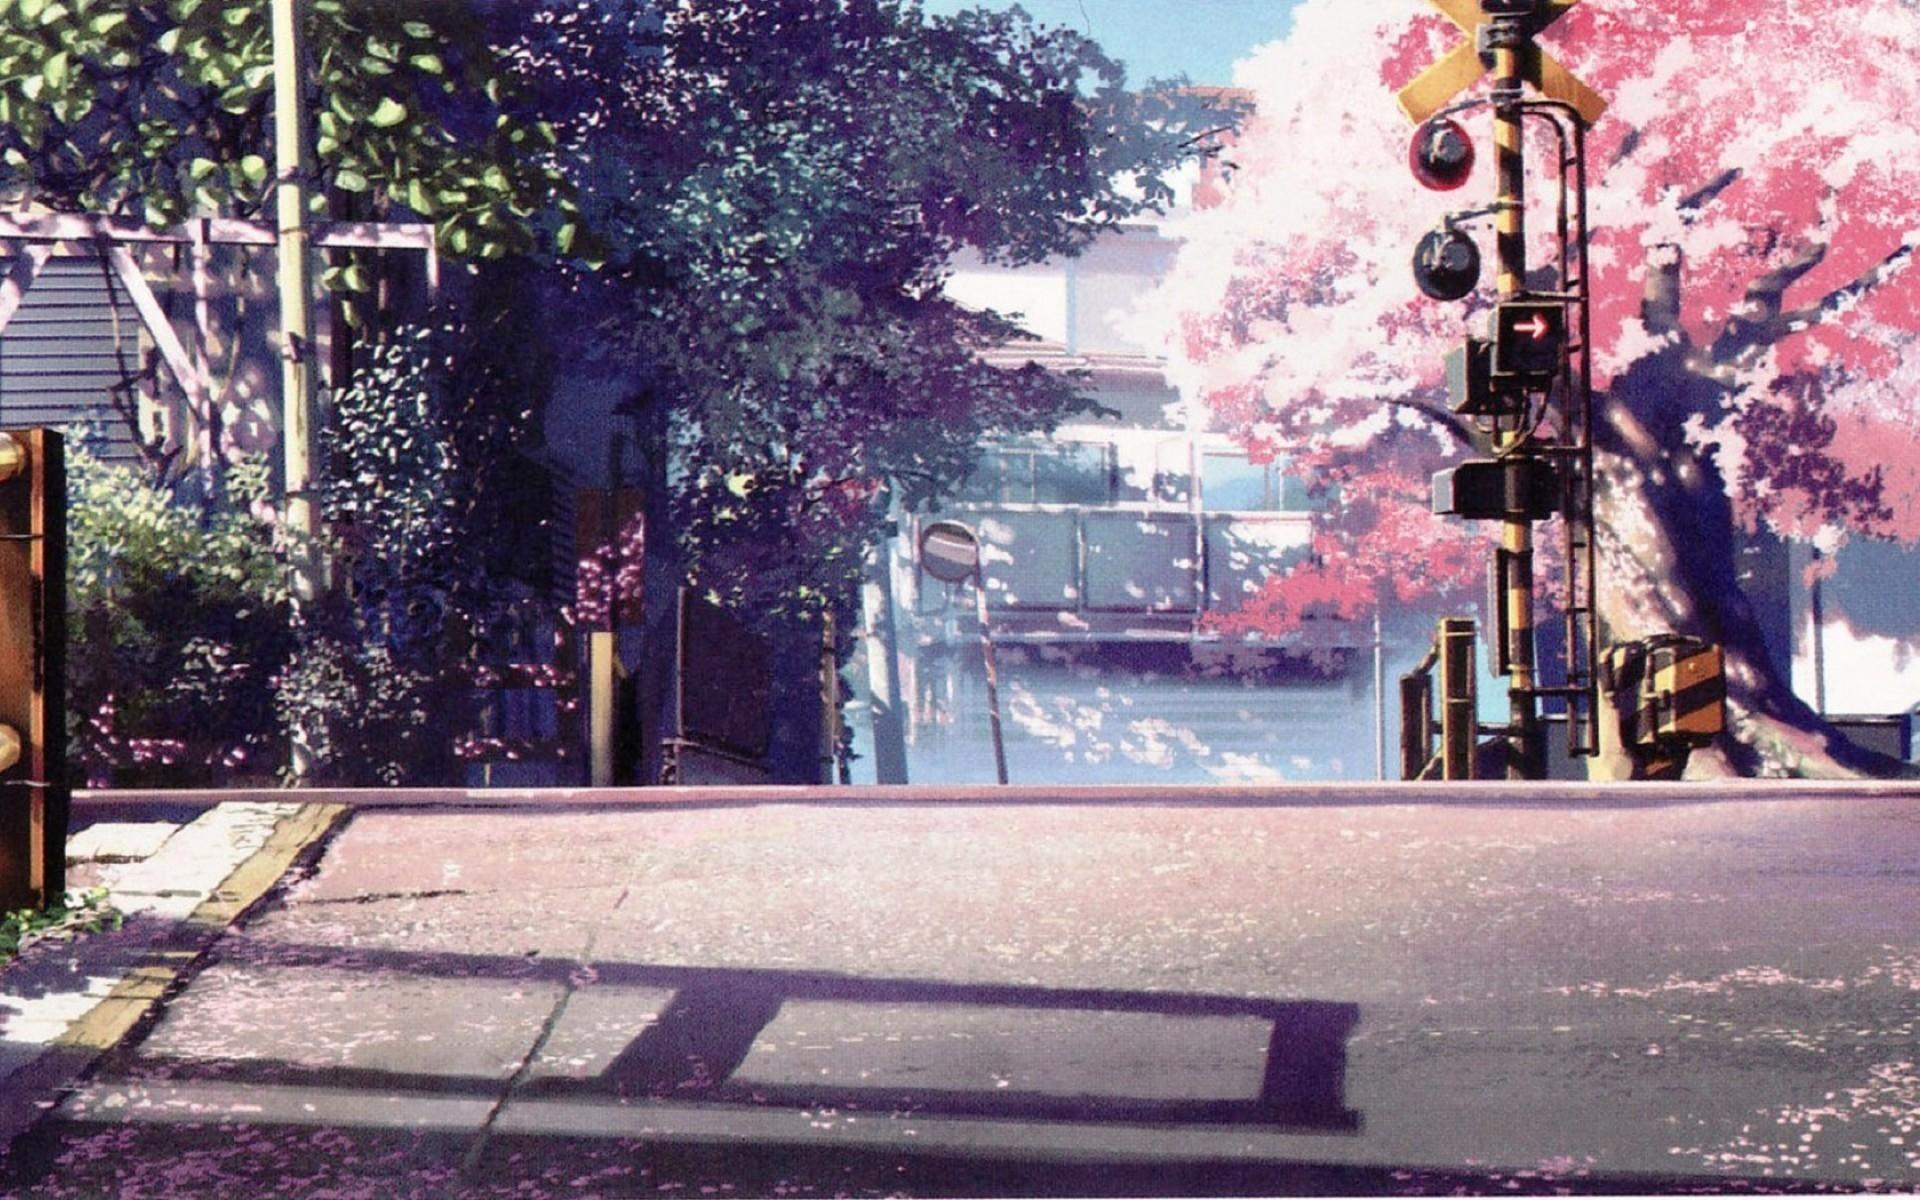 Japanese Anime Wallpaper Anime Scenery 1920x1200 Wallpaper Teahub Io